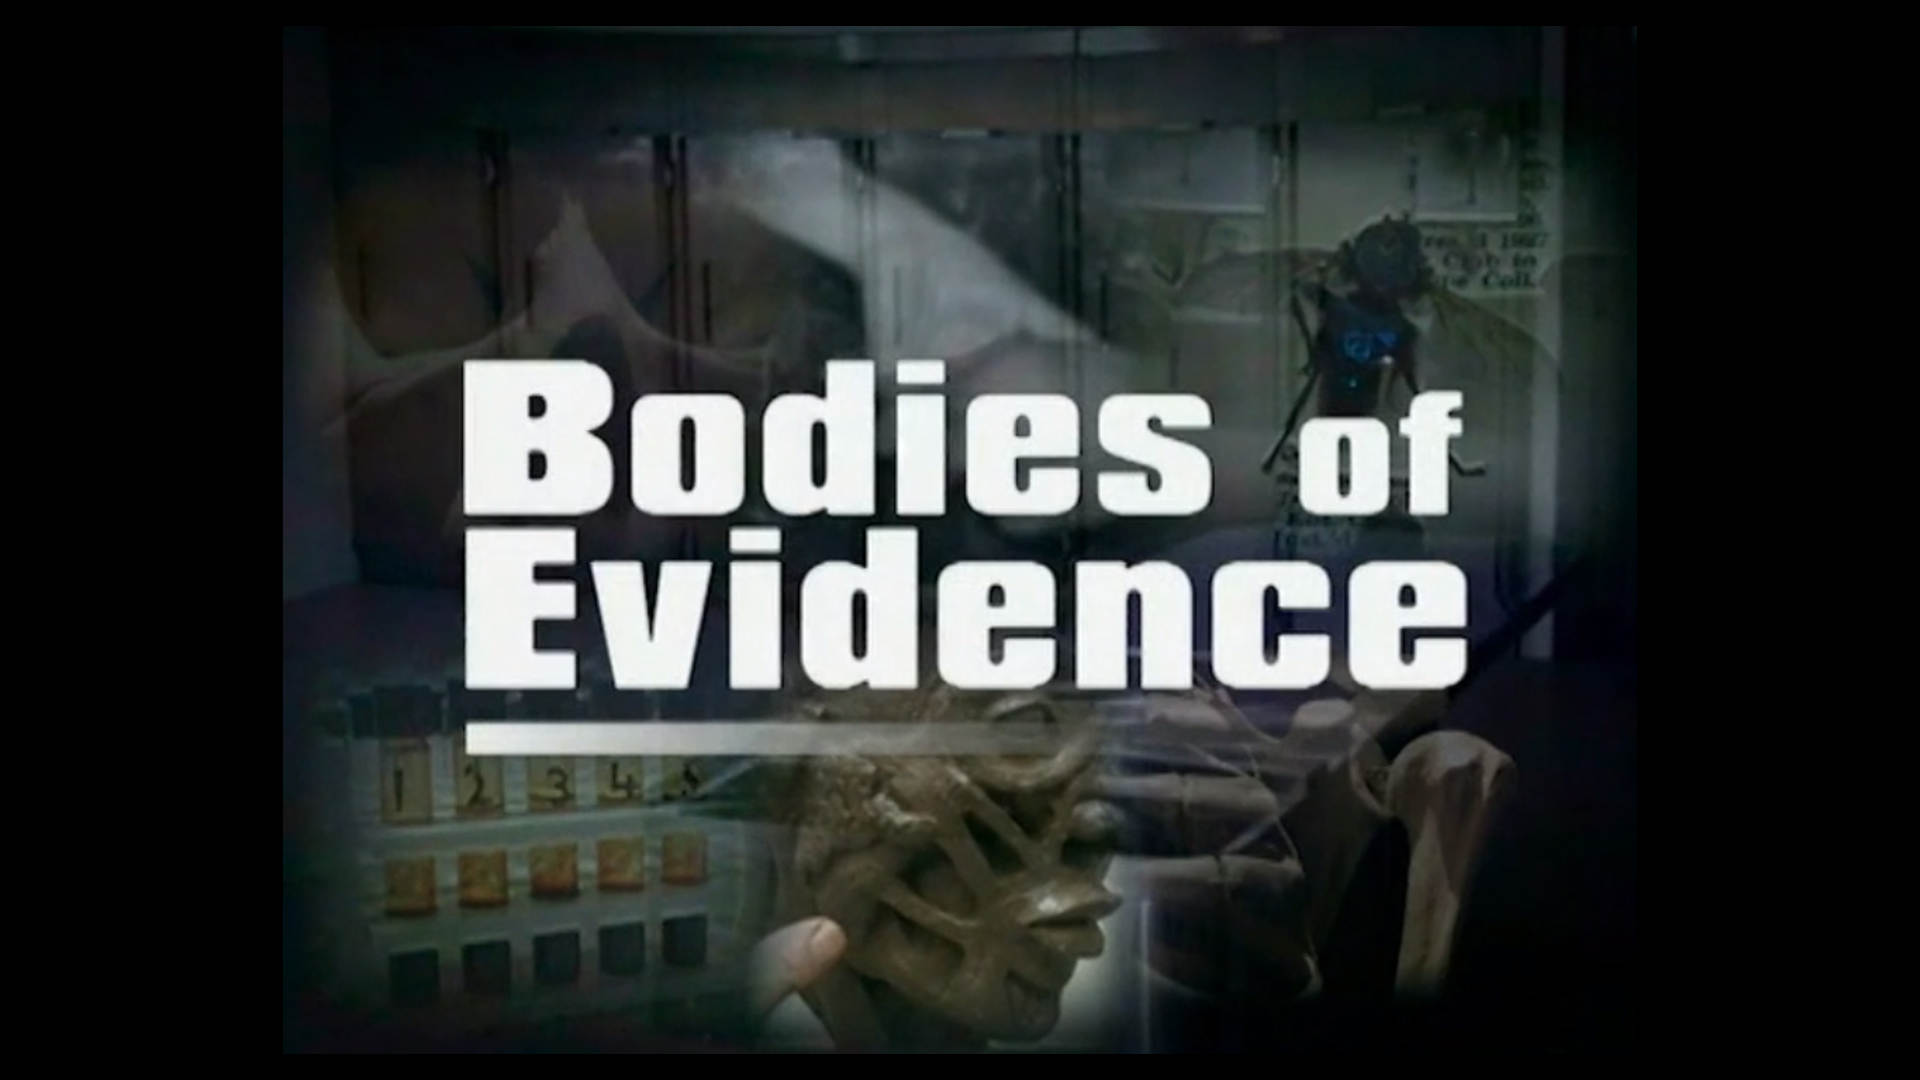 Watch Full Movie - Bodies of Evidence - Tell Tale Twist